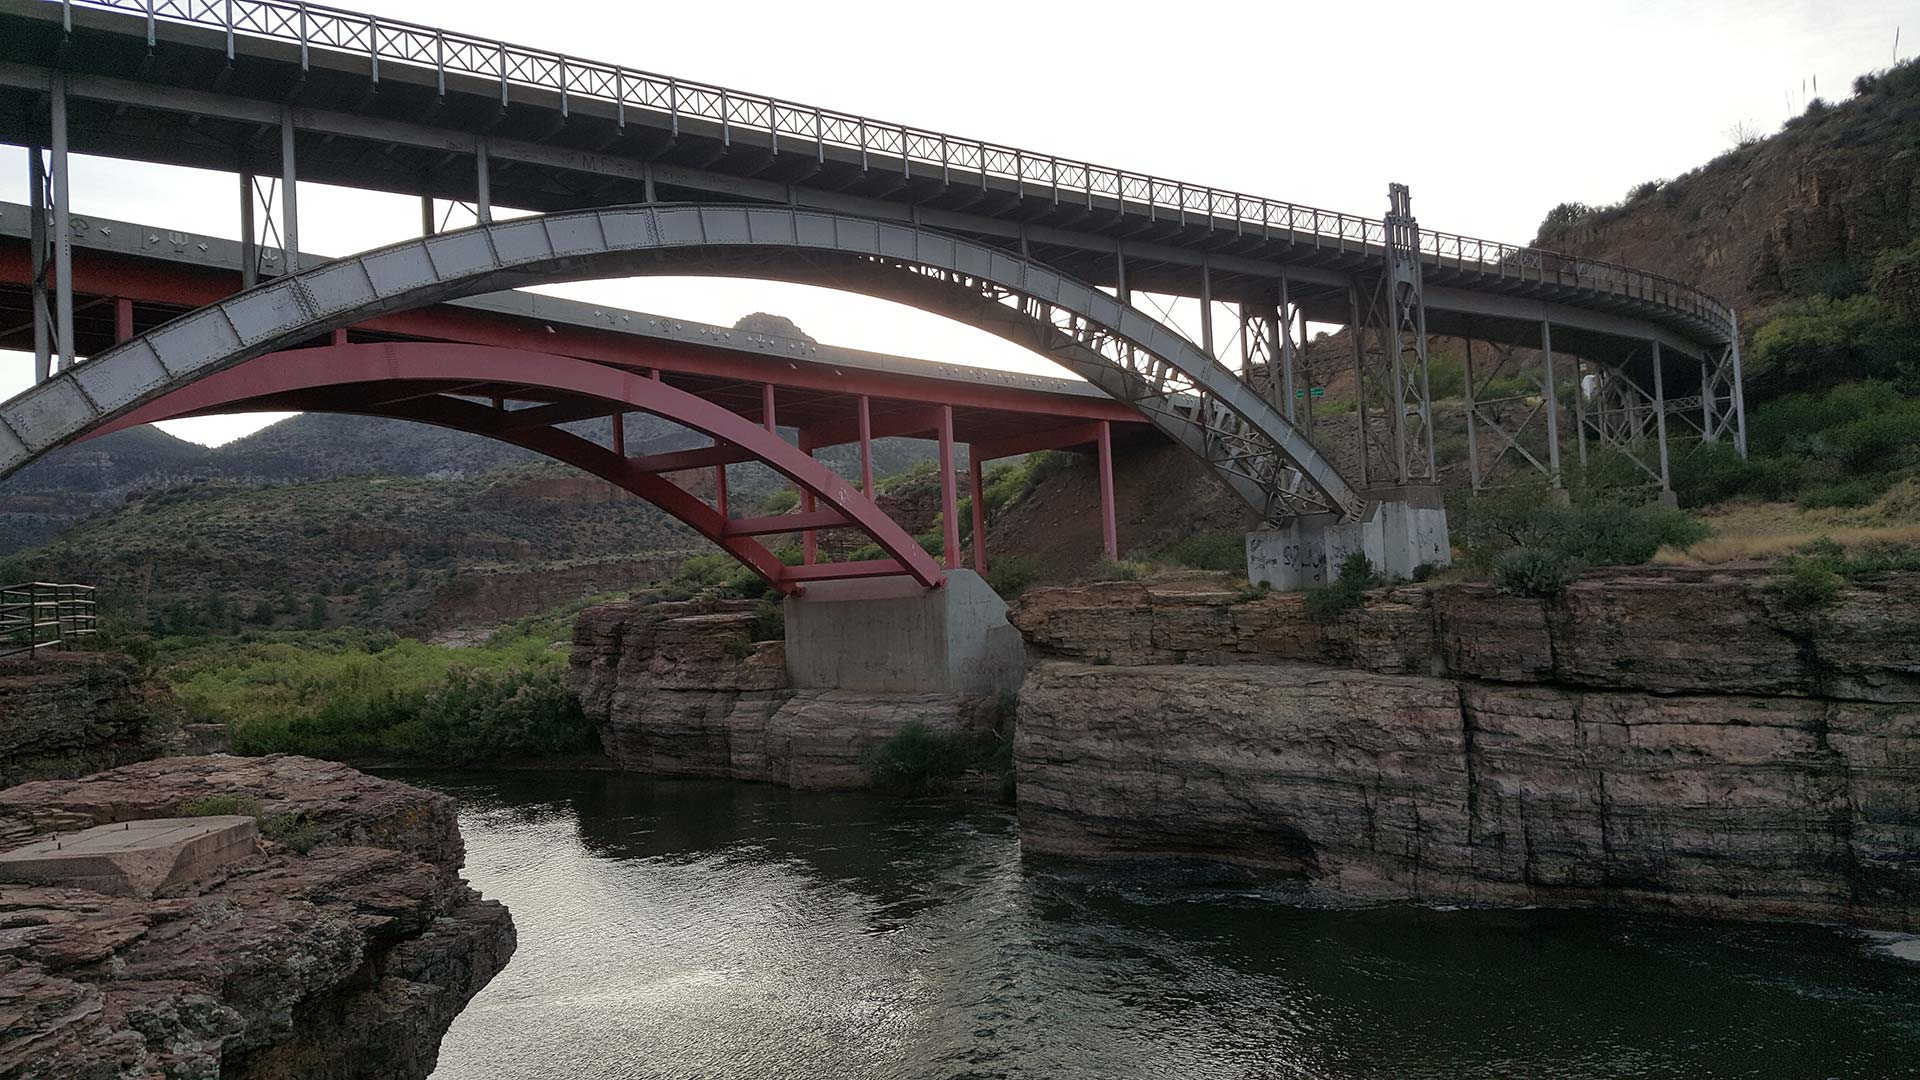 The Salt River Canyon Bridge in central Arizona.